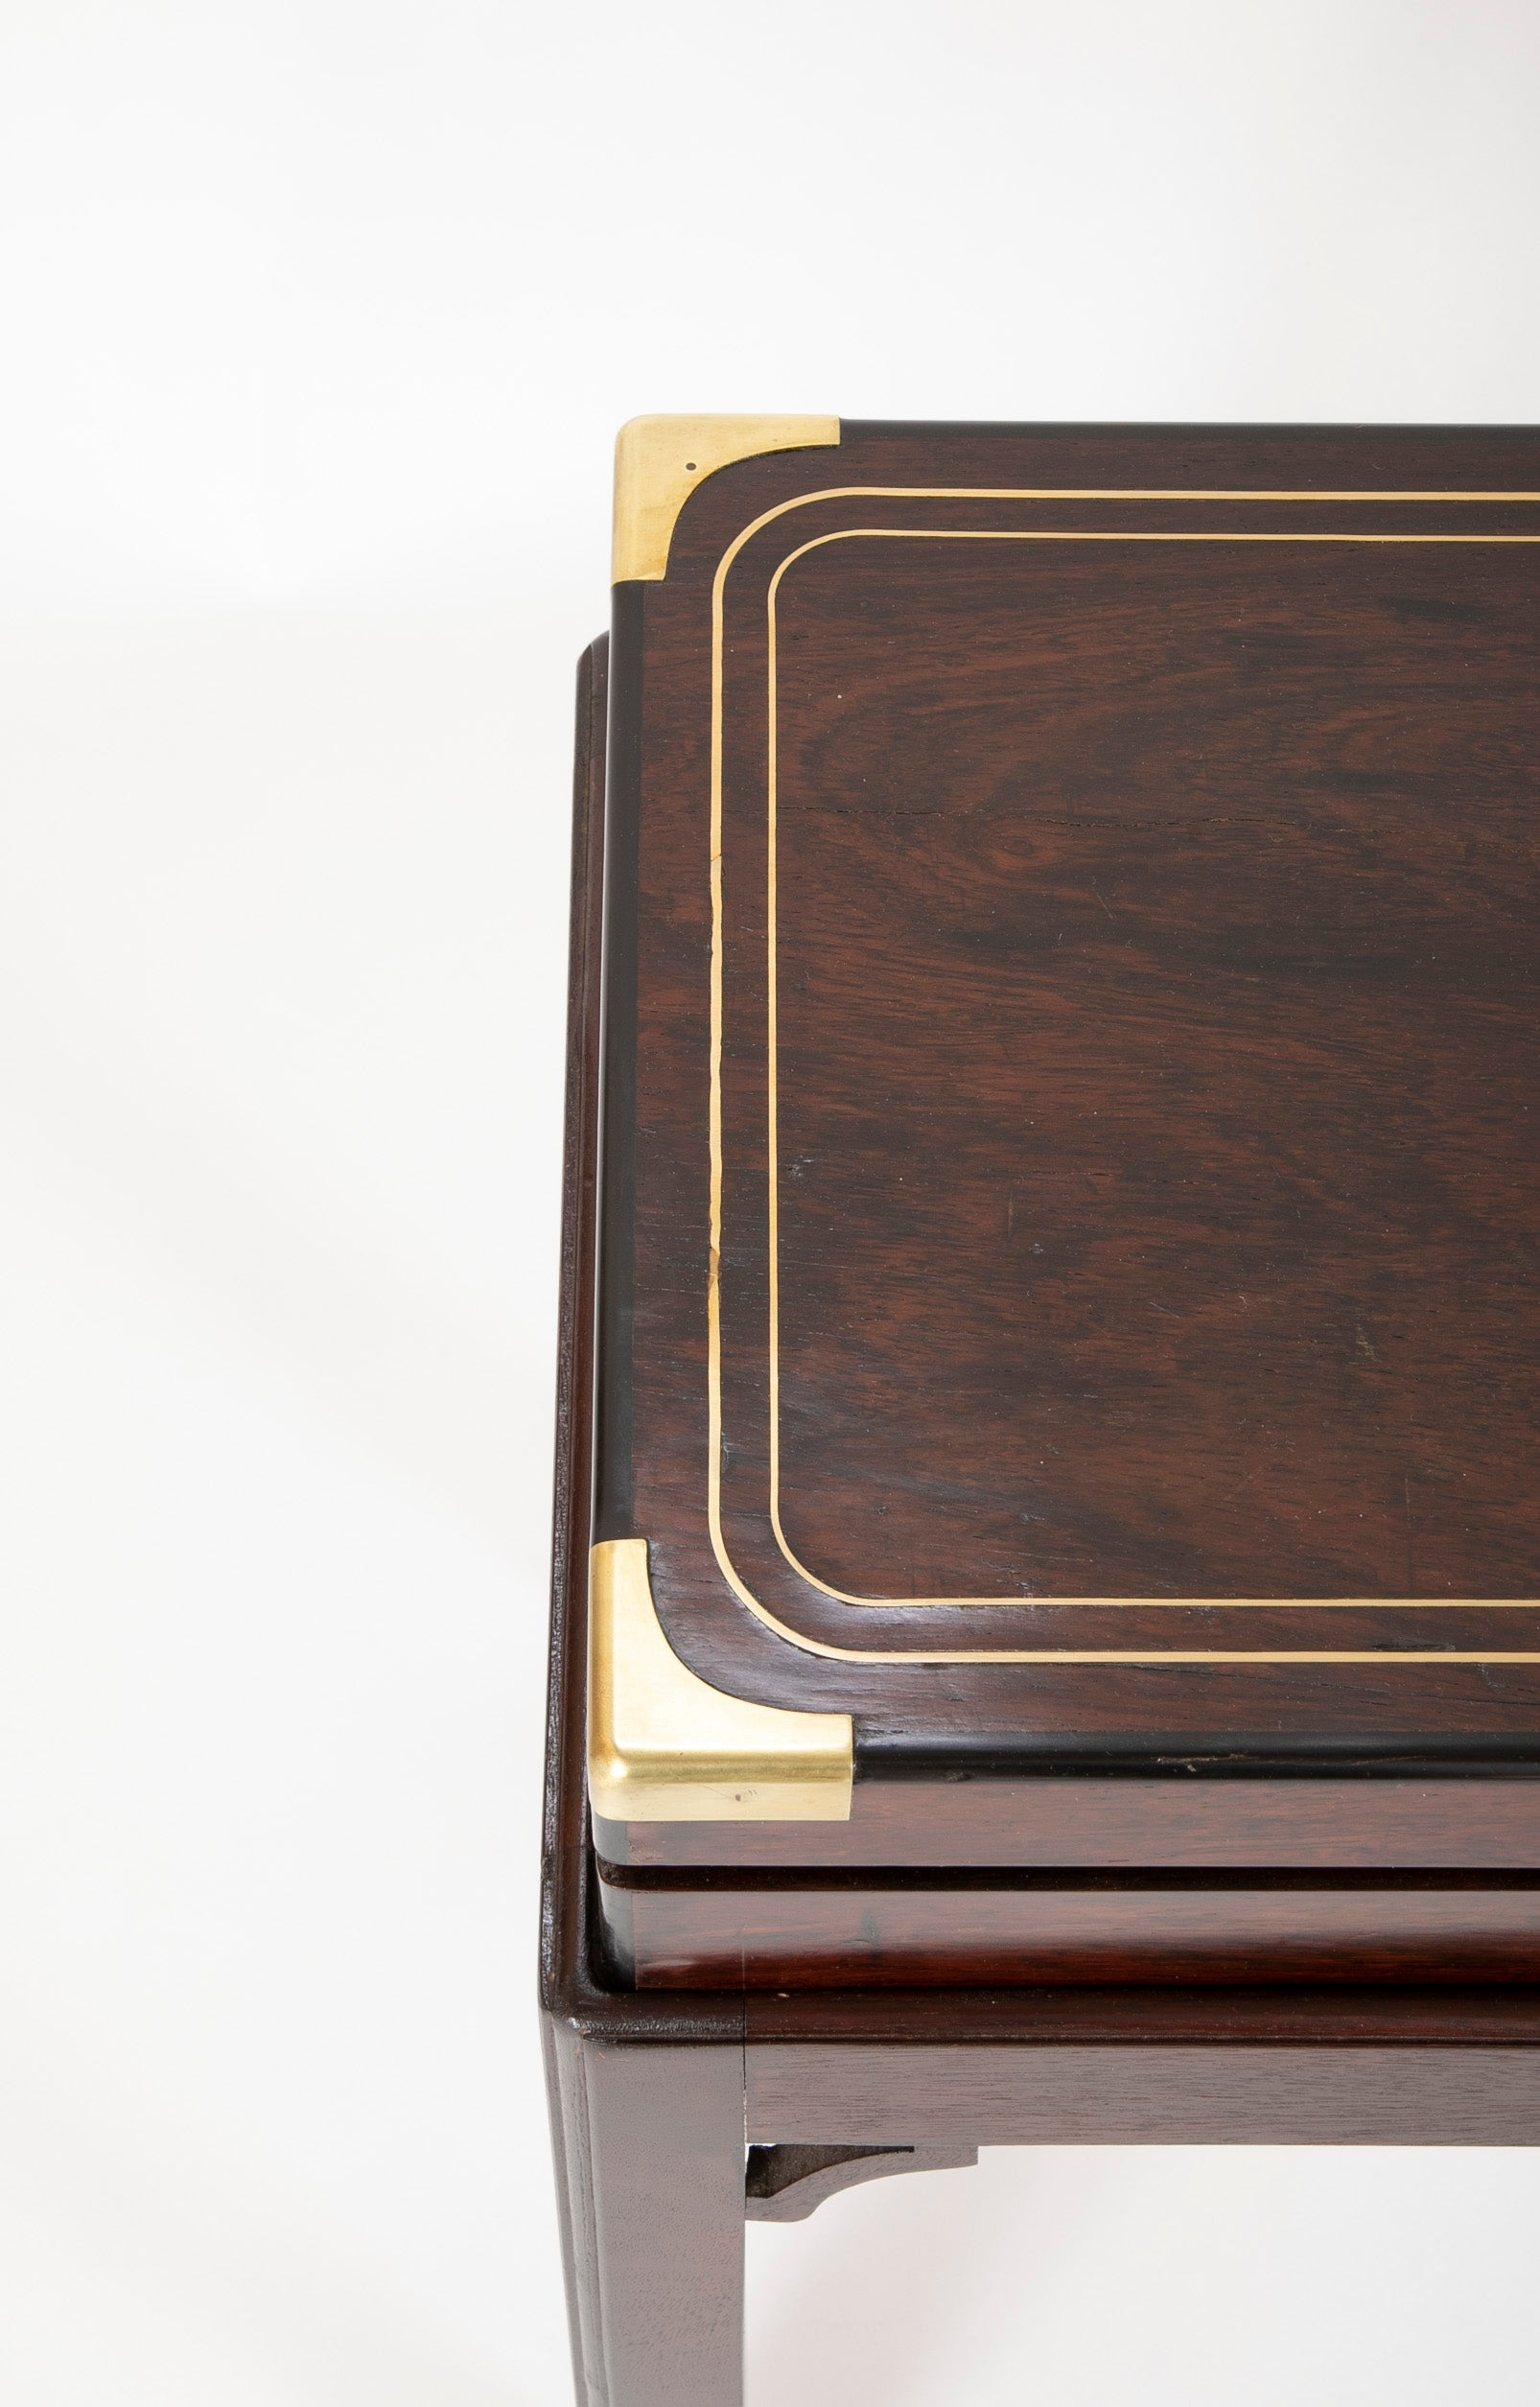 English Regency Rosewood Gun Box on Custom Stand